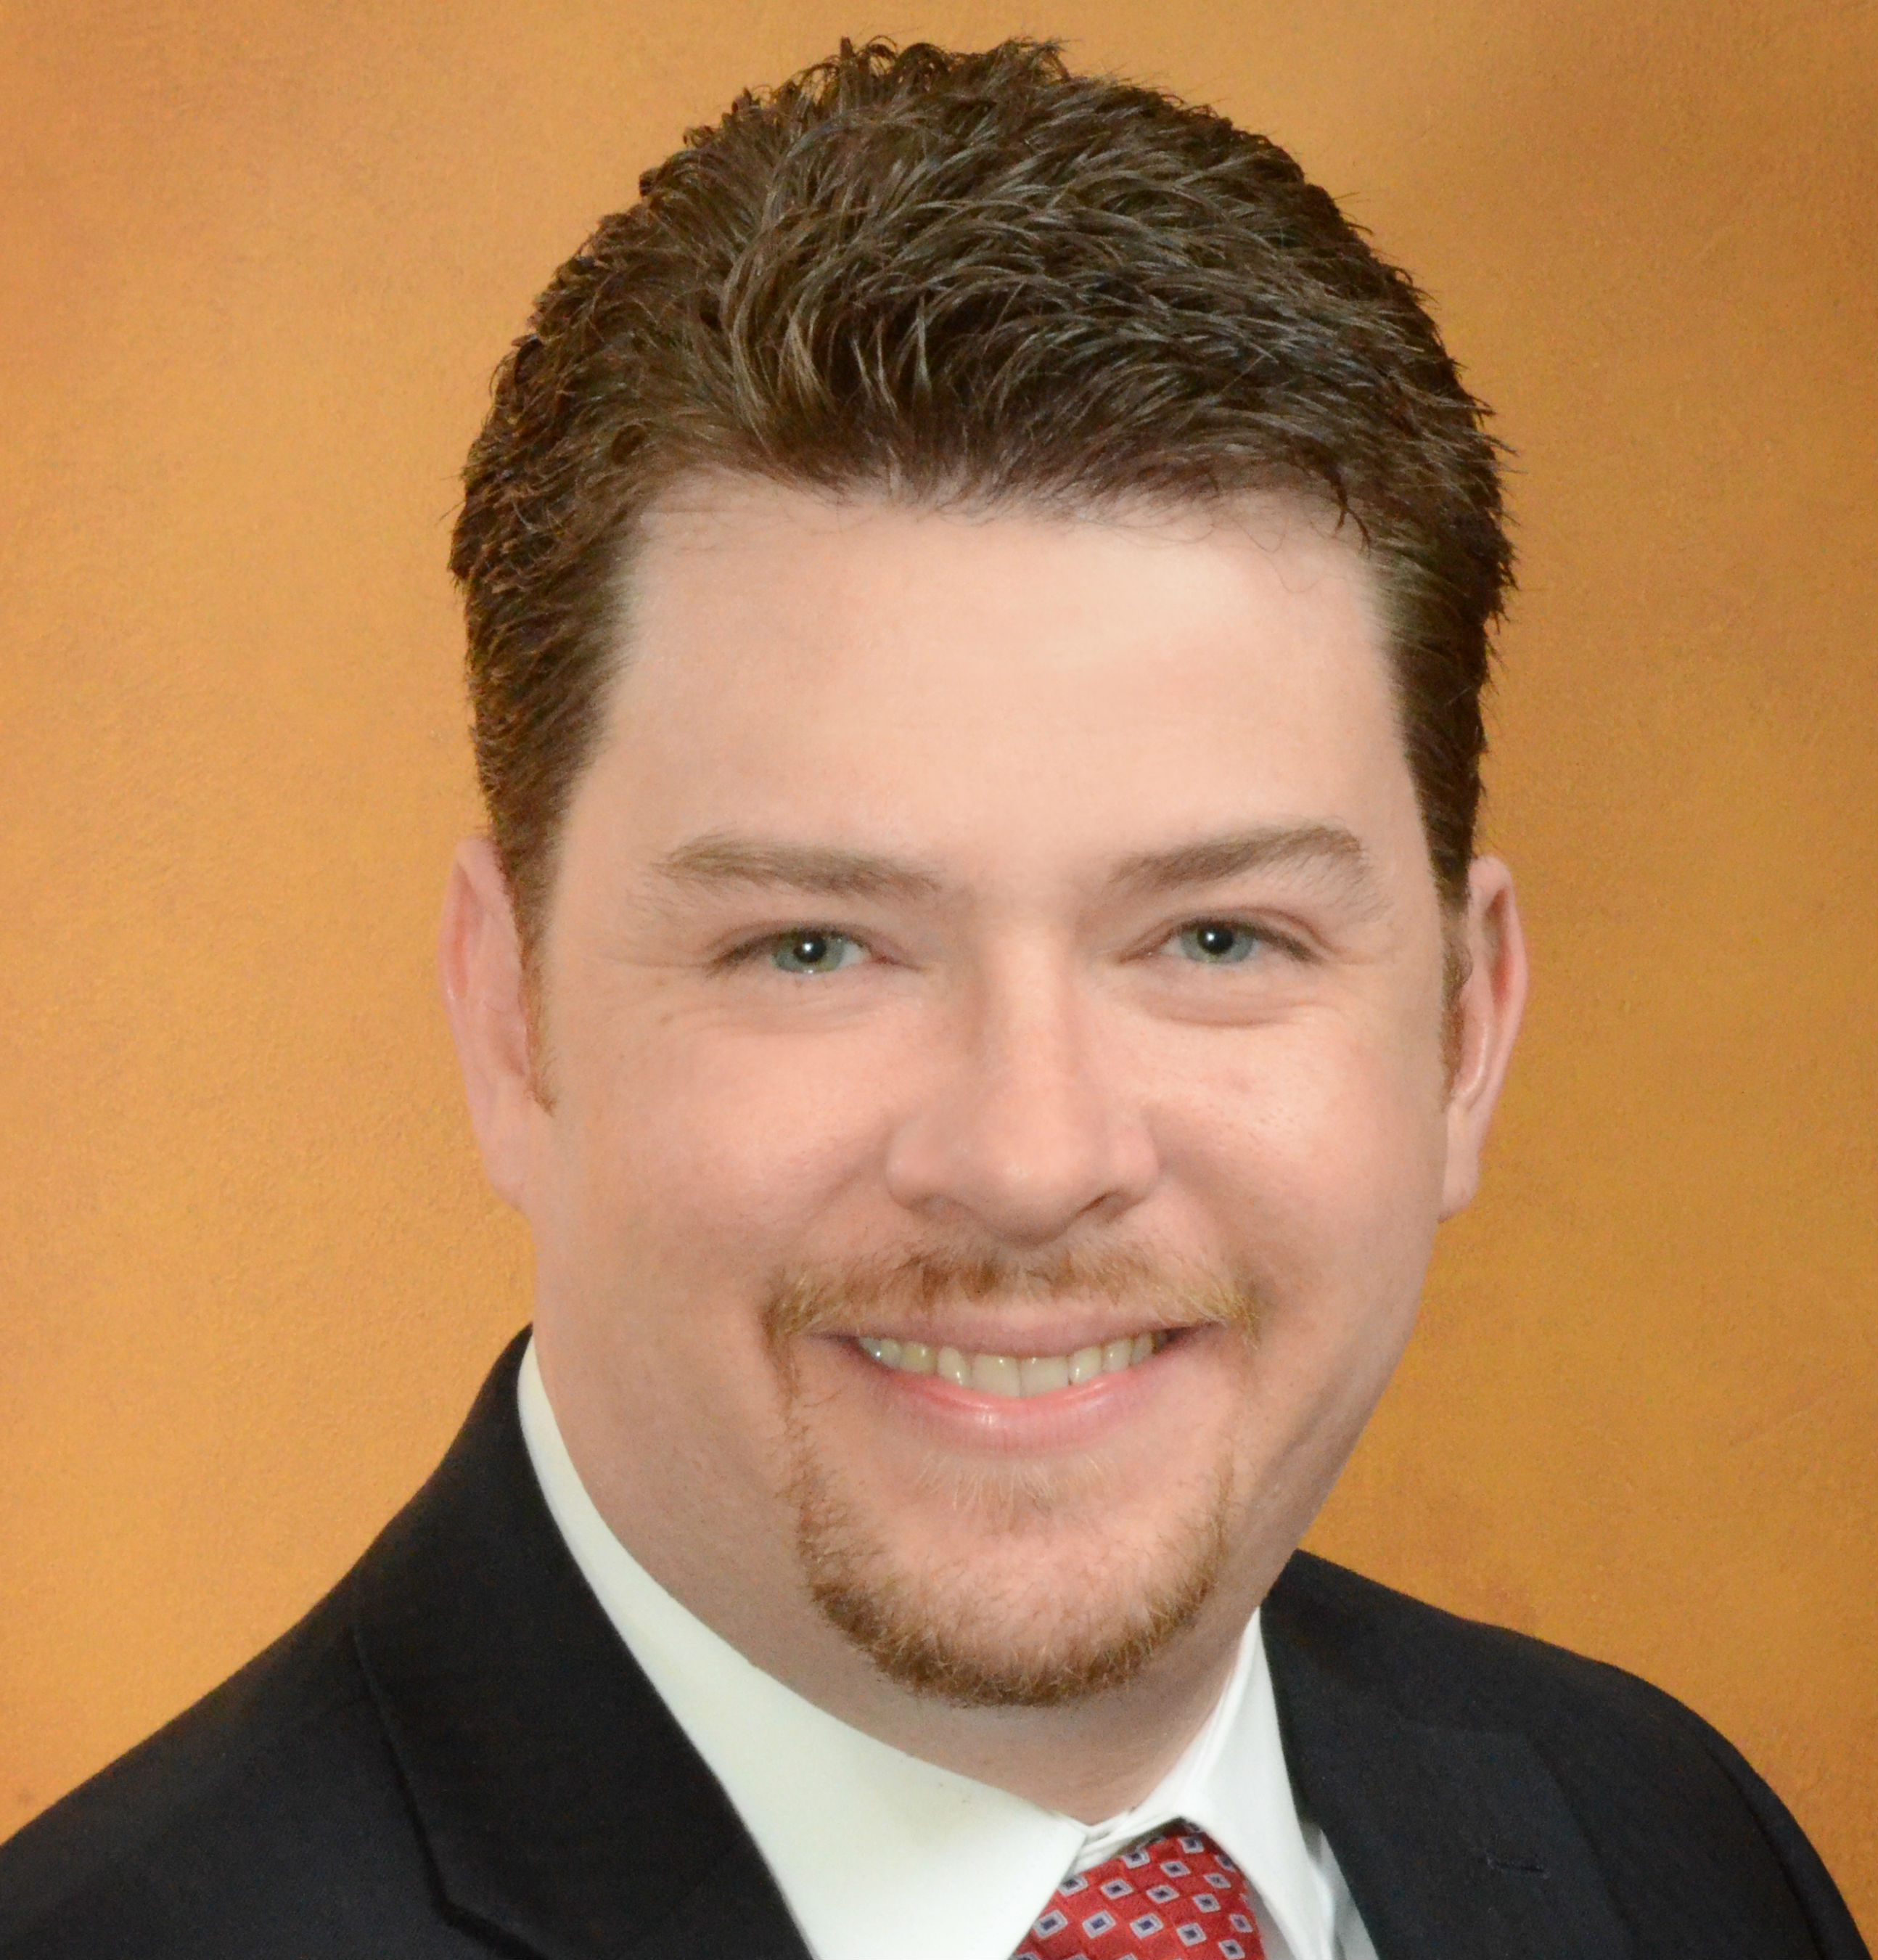 Chris Rondinelli, financial advisor Wexford PA